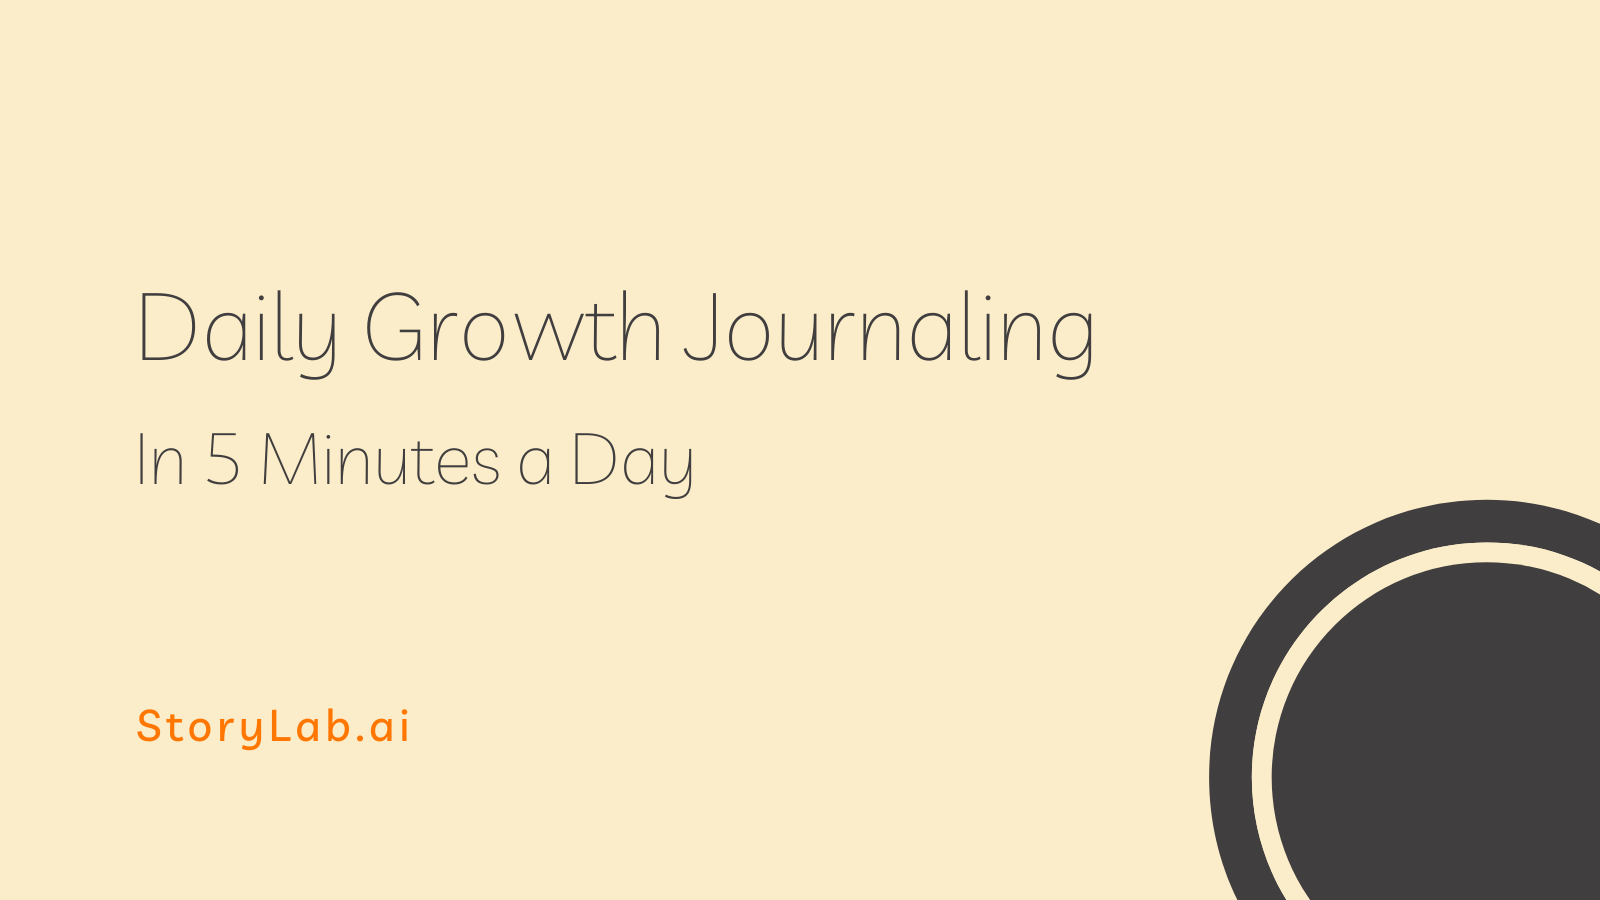 Daily Personal Growth Journaling — In 5 Minutes a Day